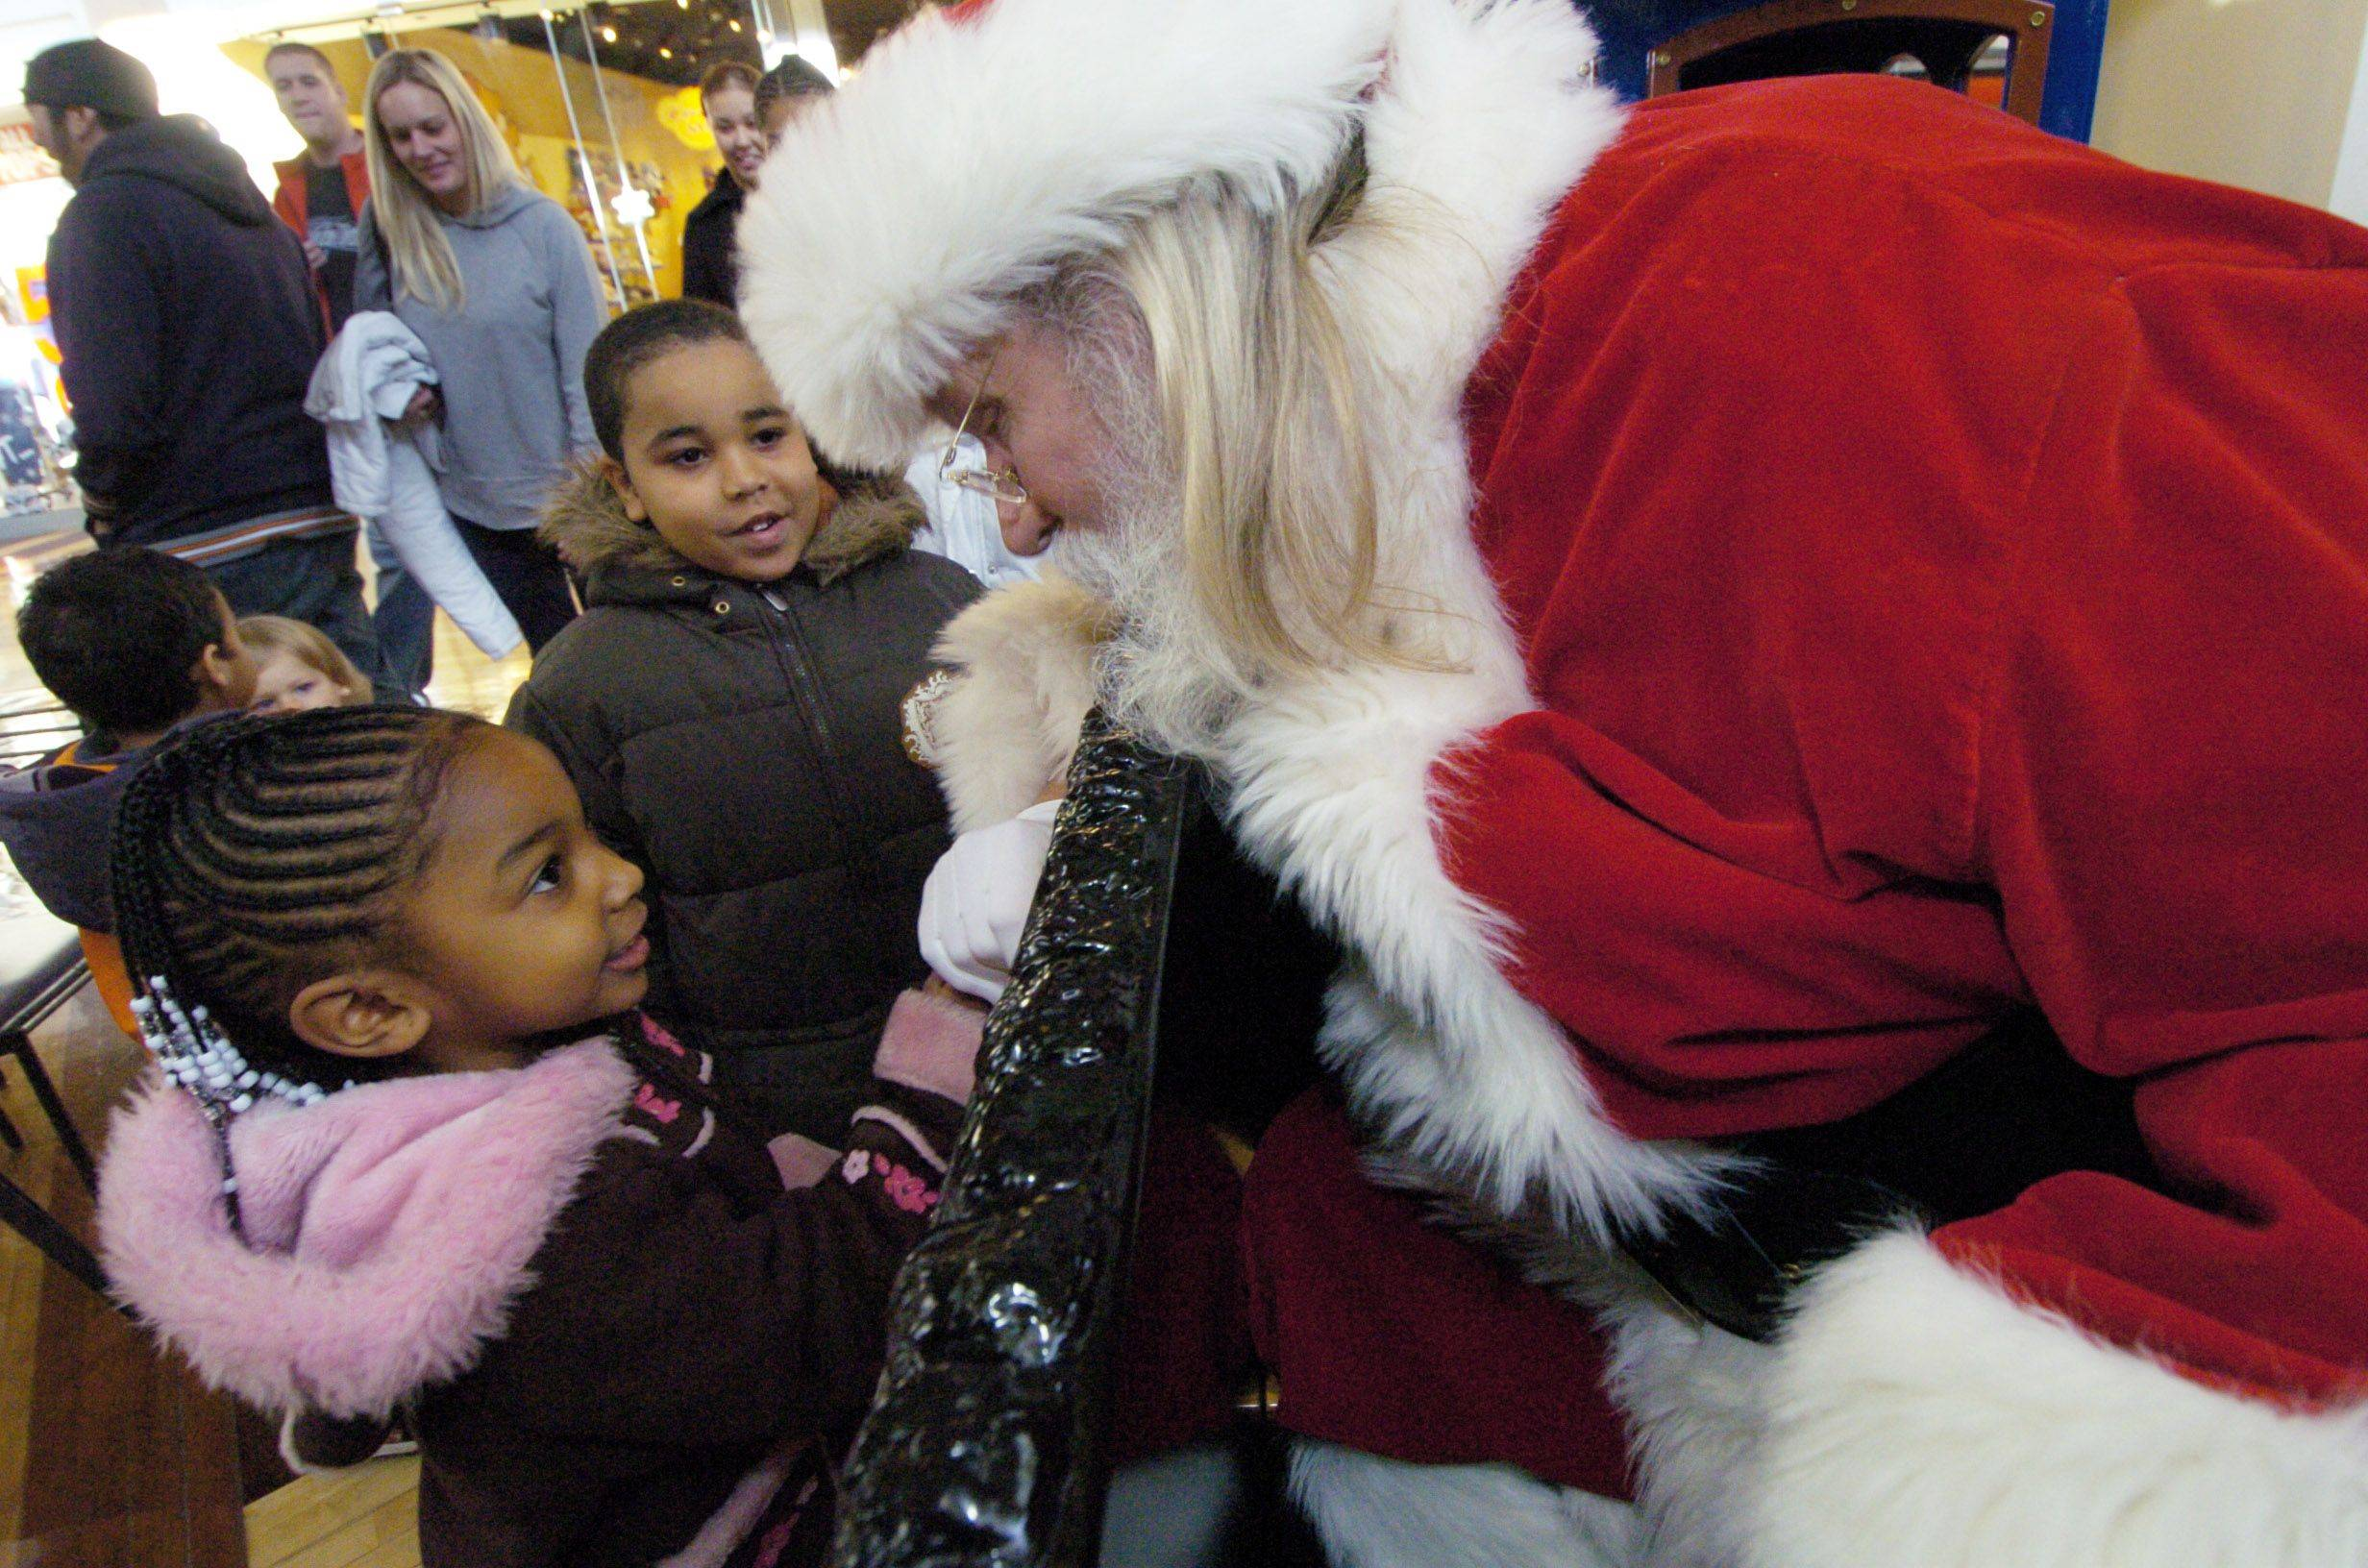 Santa Claus greets Lillie Nelson, 4, of Waukegan and her brother, Damarion Cole, 6, at Gurnee Mills Saturday.